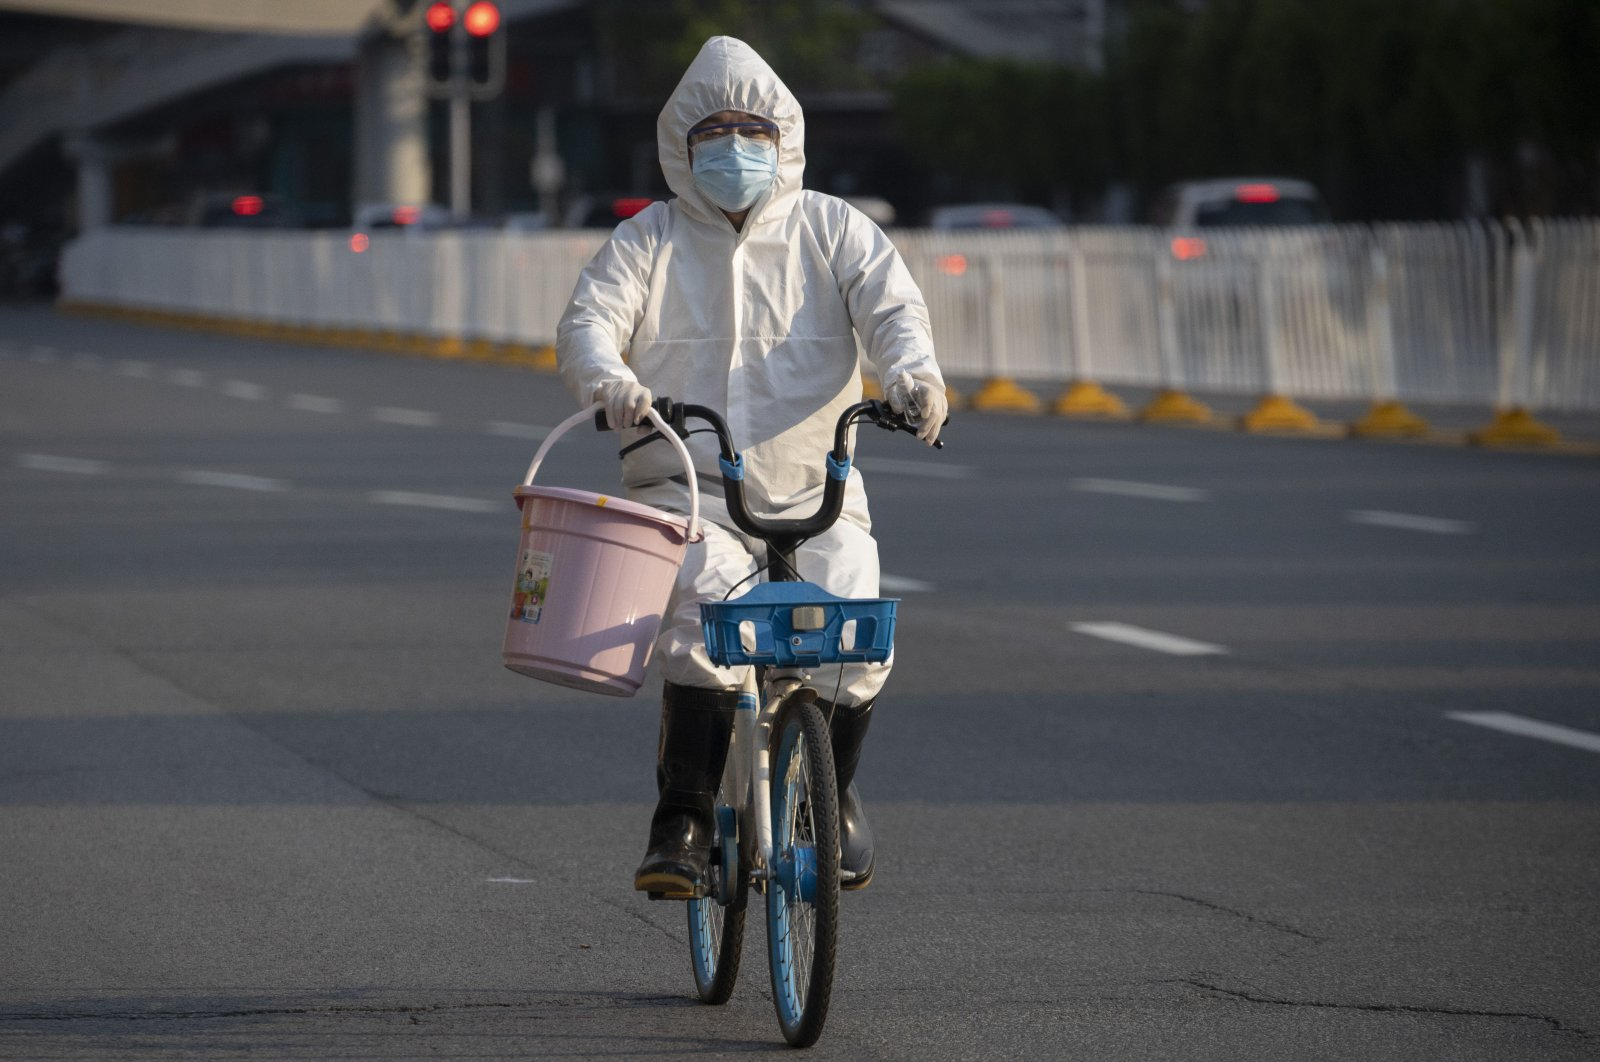 A resident wearing mask and suit against the coronavirus cycles in Wuhan, Hubei province, central China, April 12, 2020. (AP Photo)